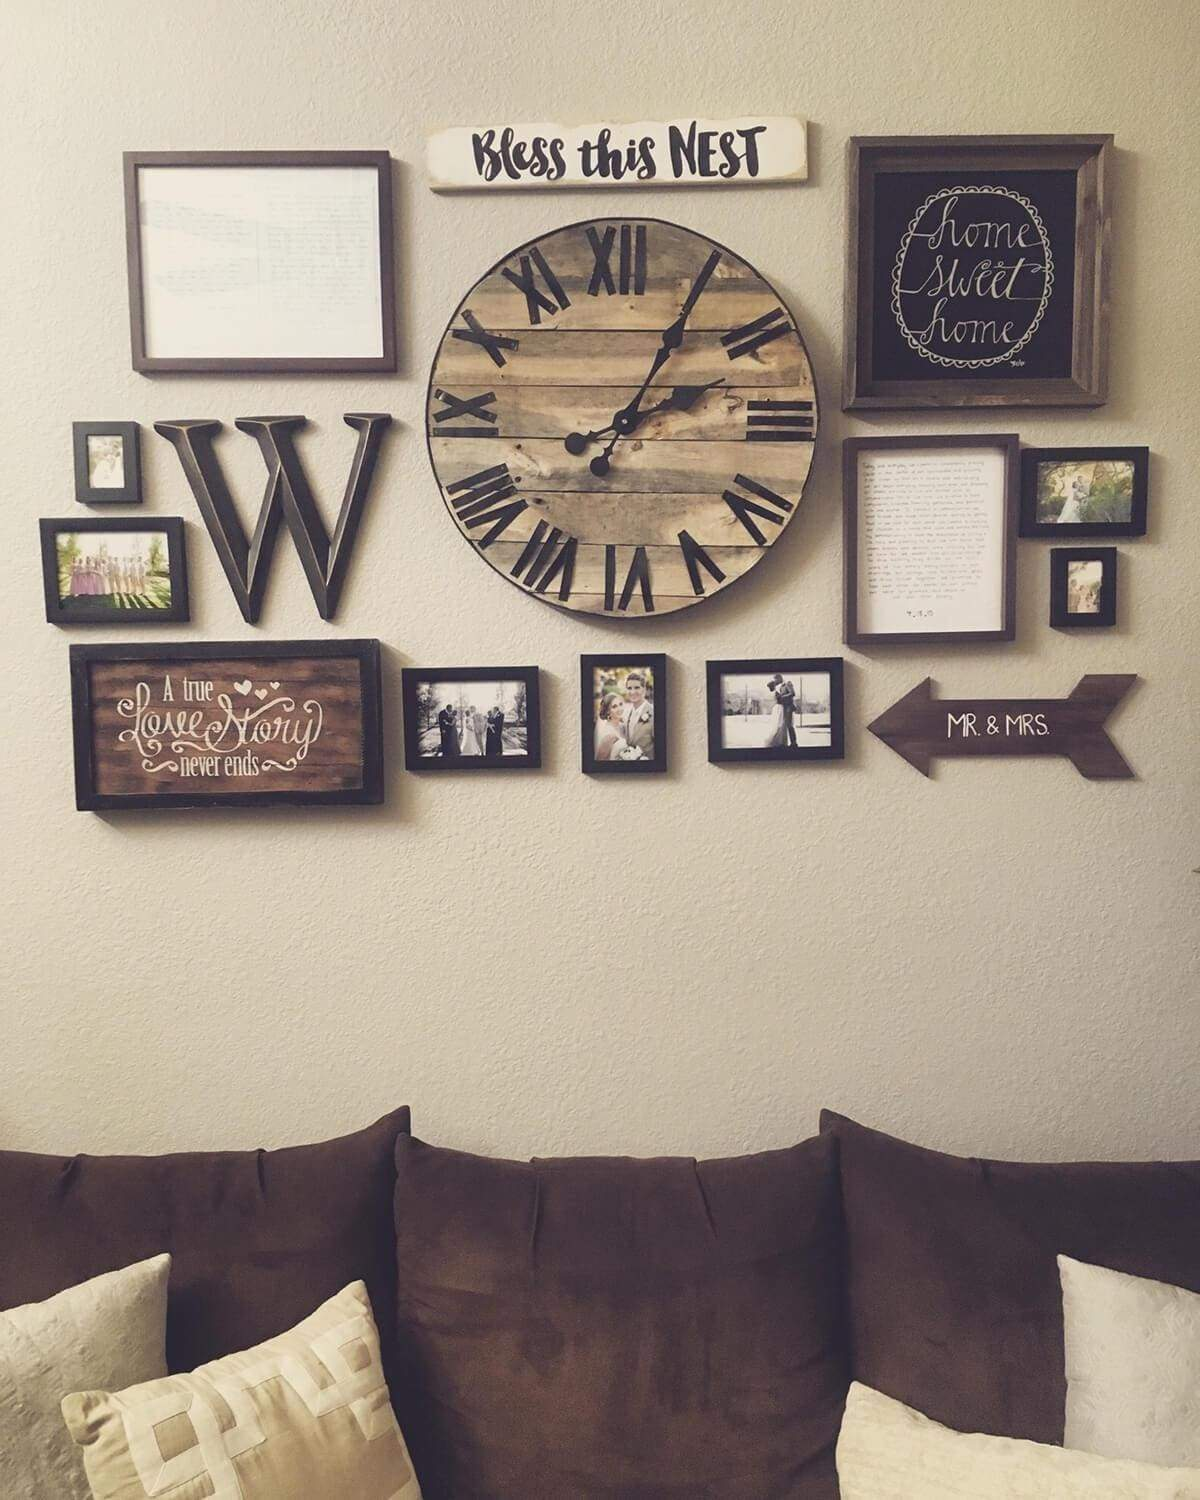 Here's that rustic clock, this 18-inch size and finish is one of our best sellers. Combine it with a grouping of small welcoming signs and family photos. While a little crowded, when grouped in a tight rectangular grouping, it makes for a neat arrangement themed in family, home, and love.